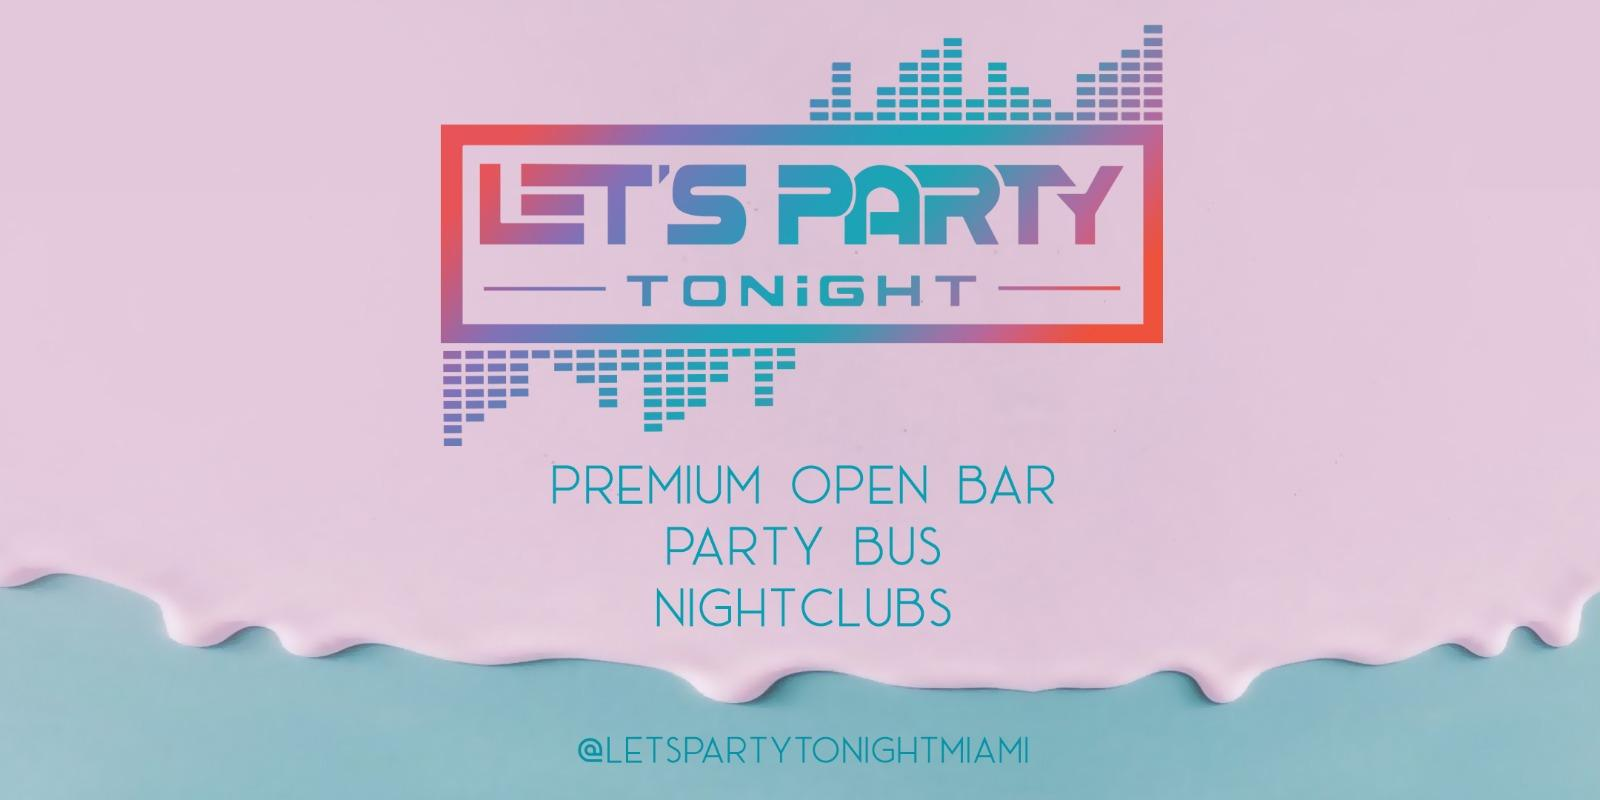 MIAMI NIGHTLIFE PARTY PACAGE